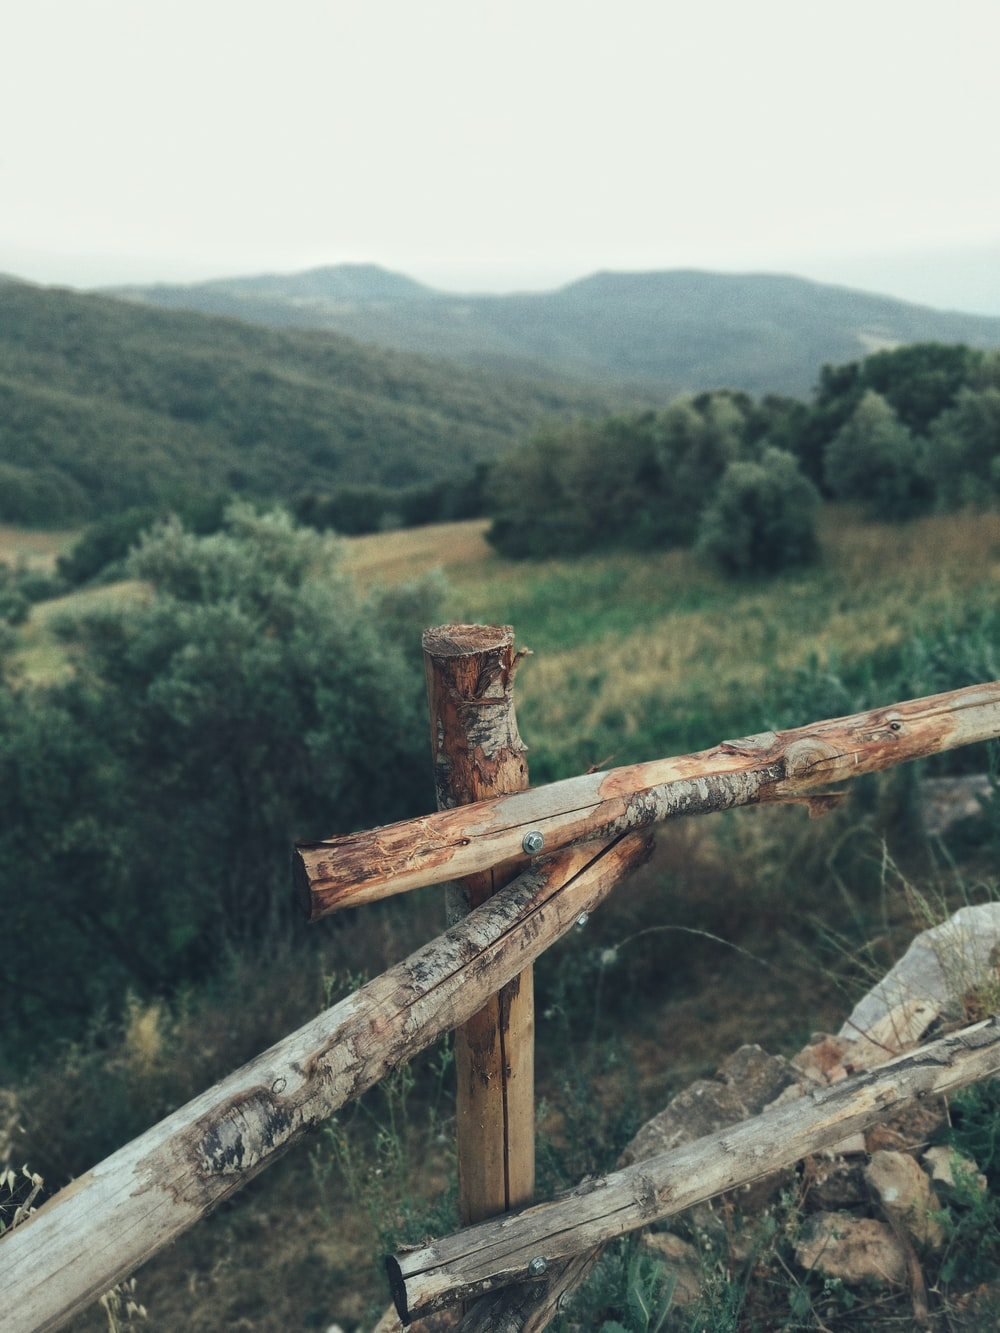 brown wooden fence near trees and mountains at the distance